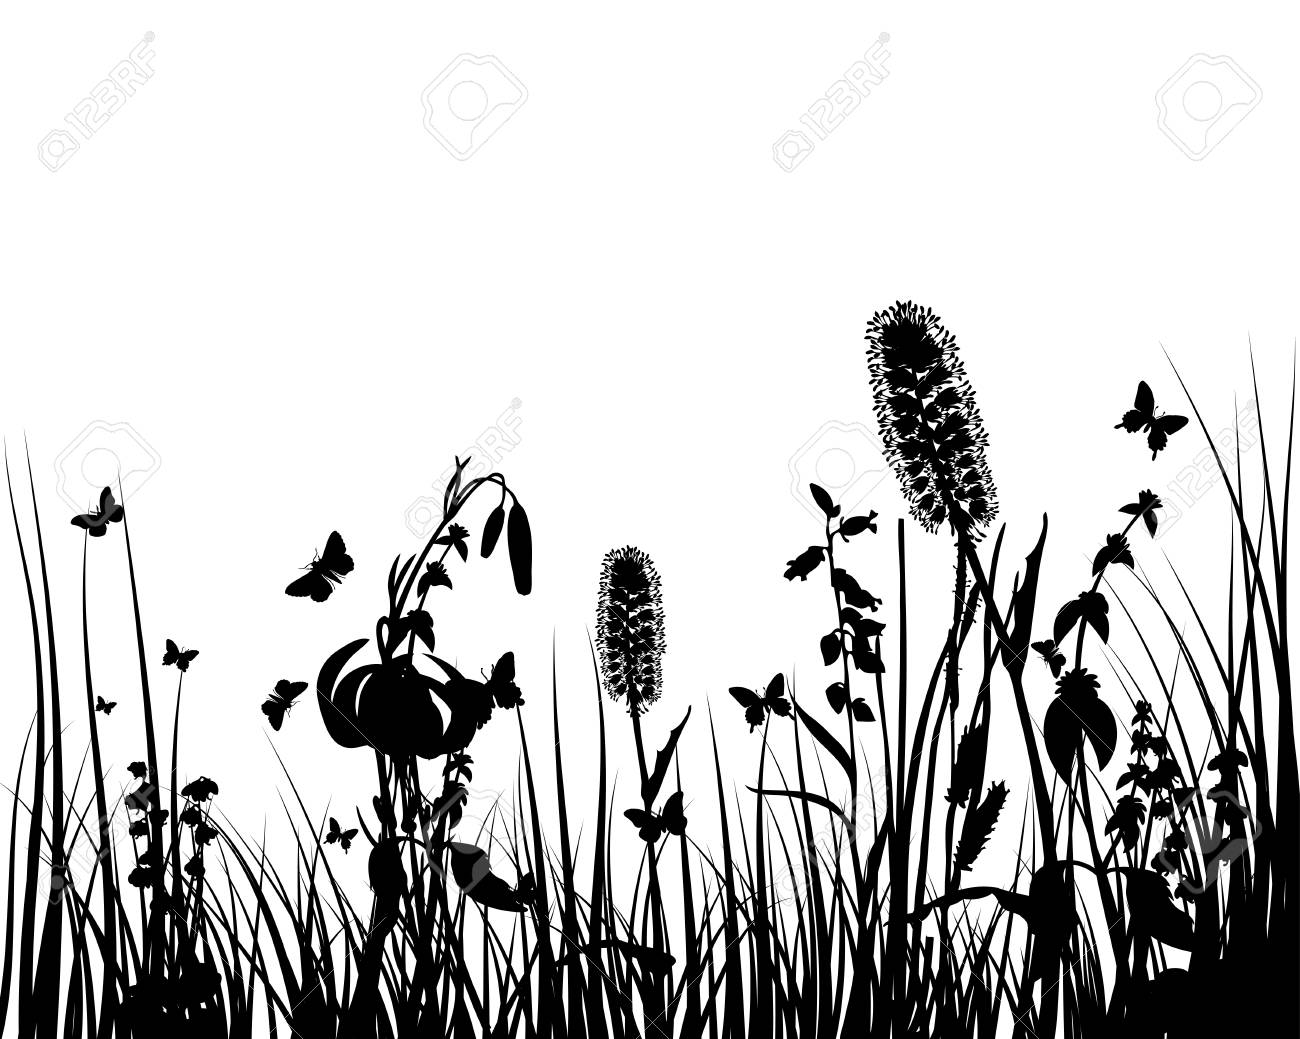 Vector grass silhouettes background. All objects are separated. Stock Vector - 12493051